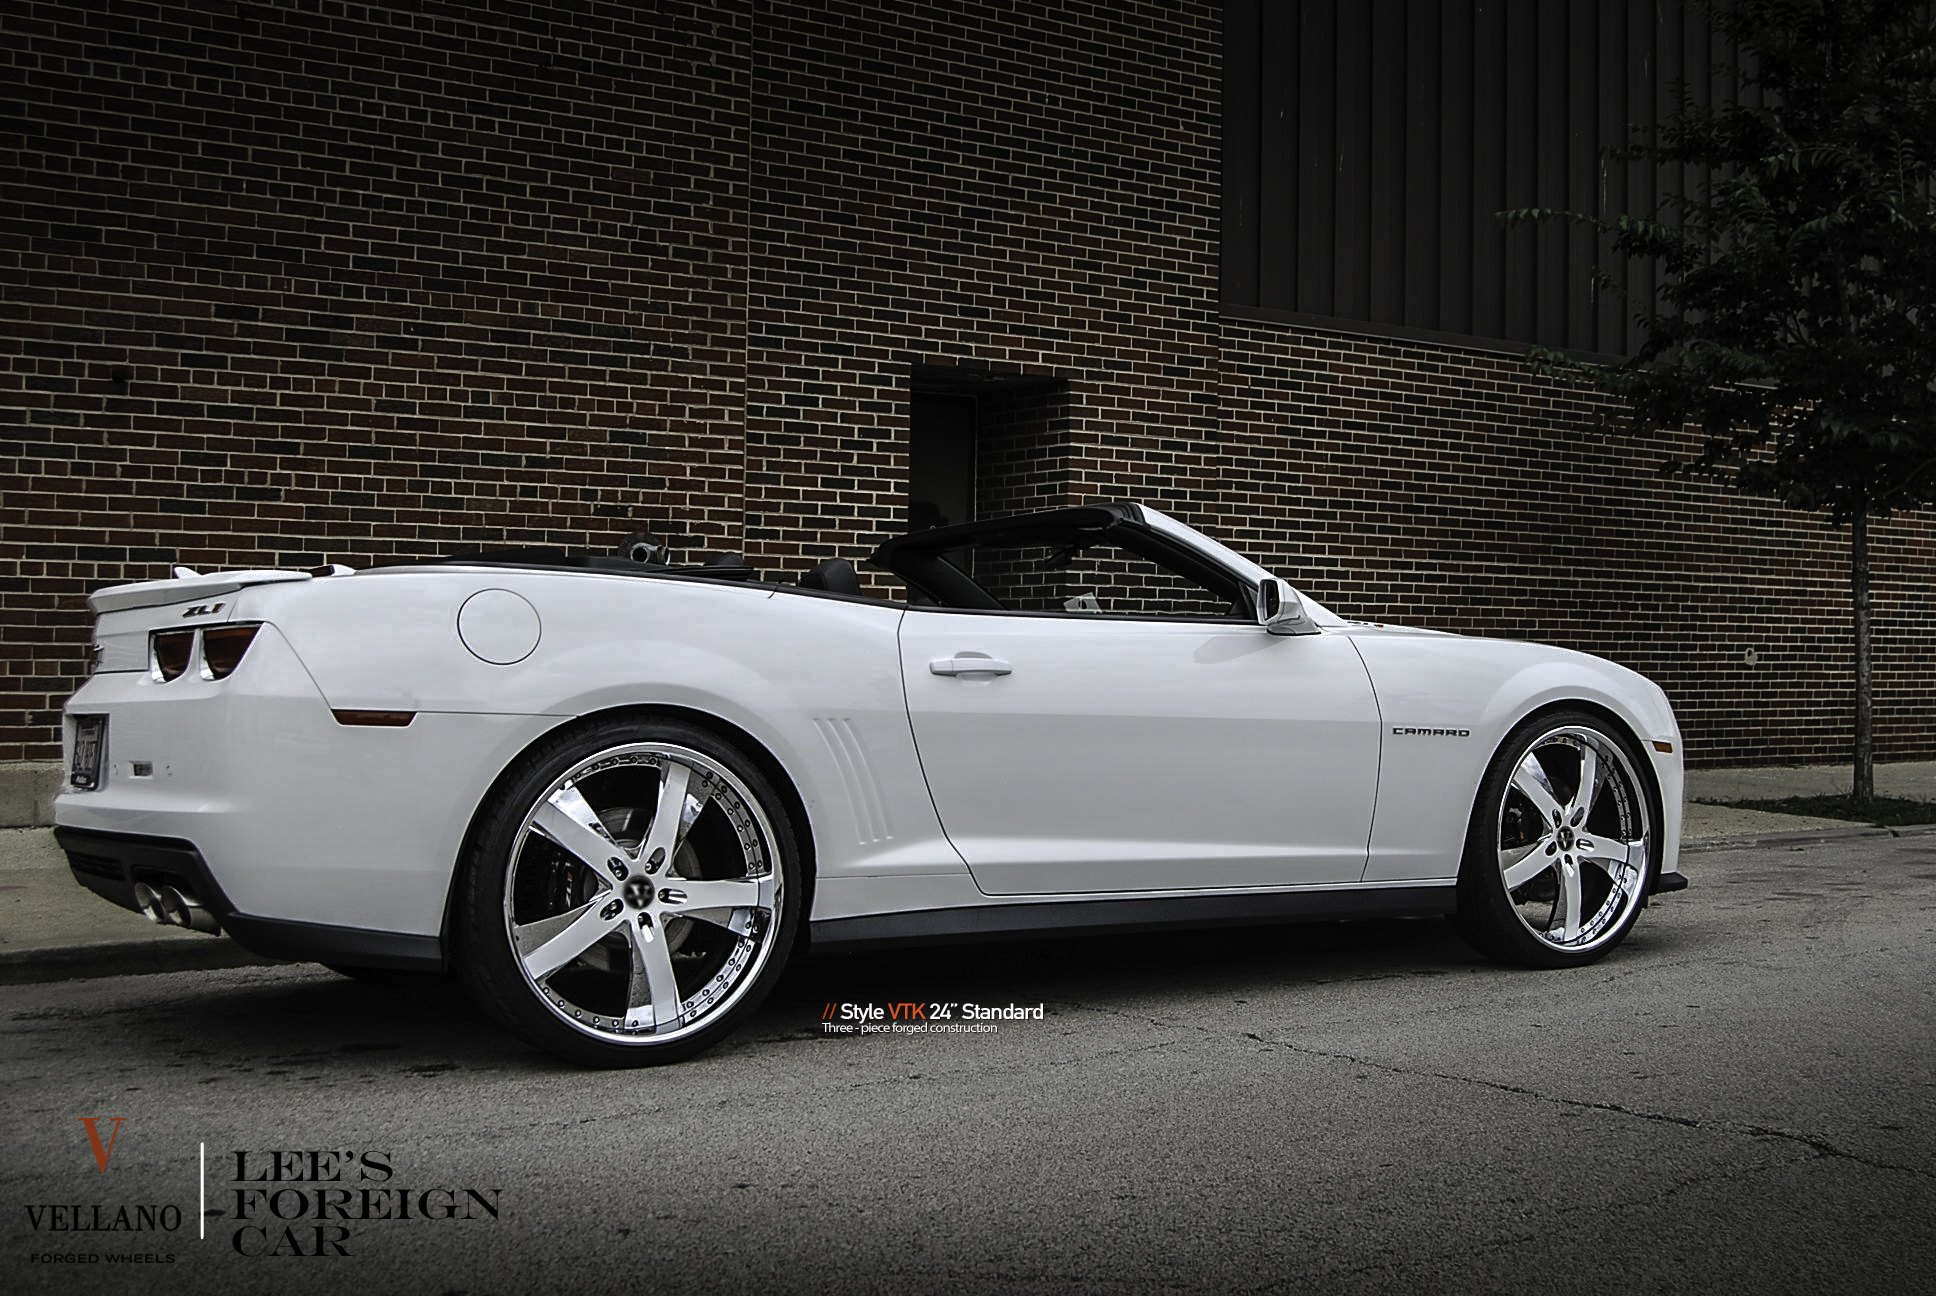 24 Inch VTK Vellano Rims on White Chevy Camaro - Photo by Vellano